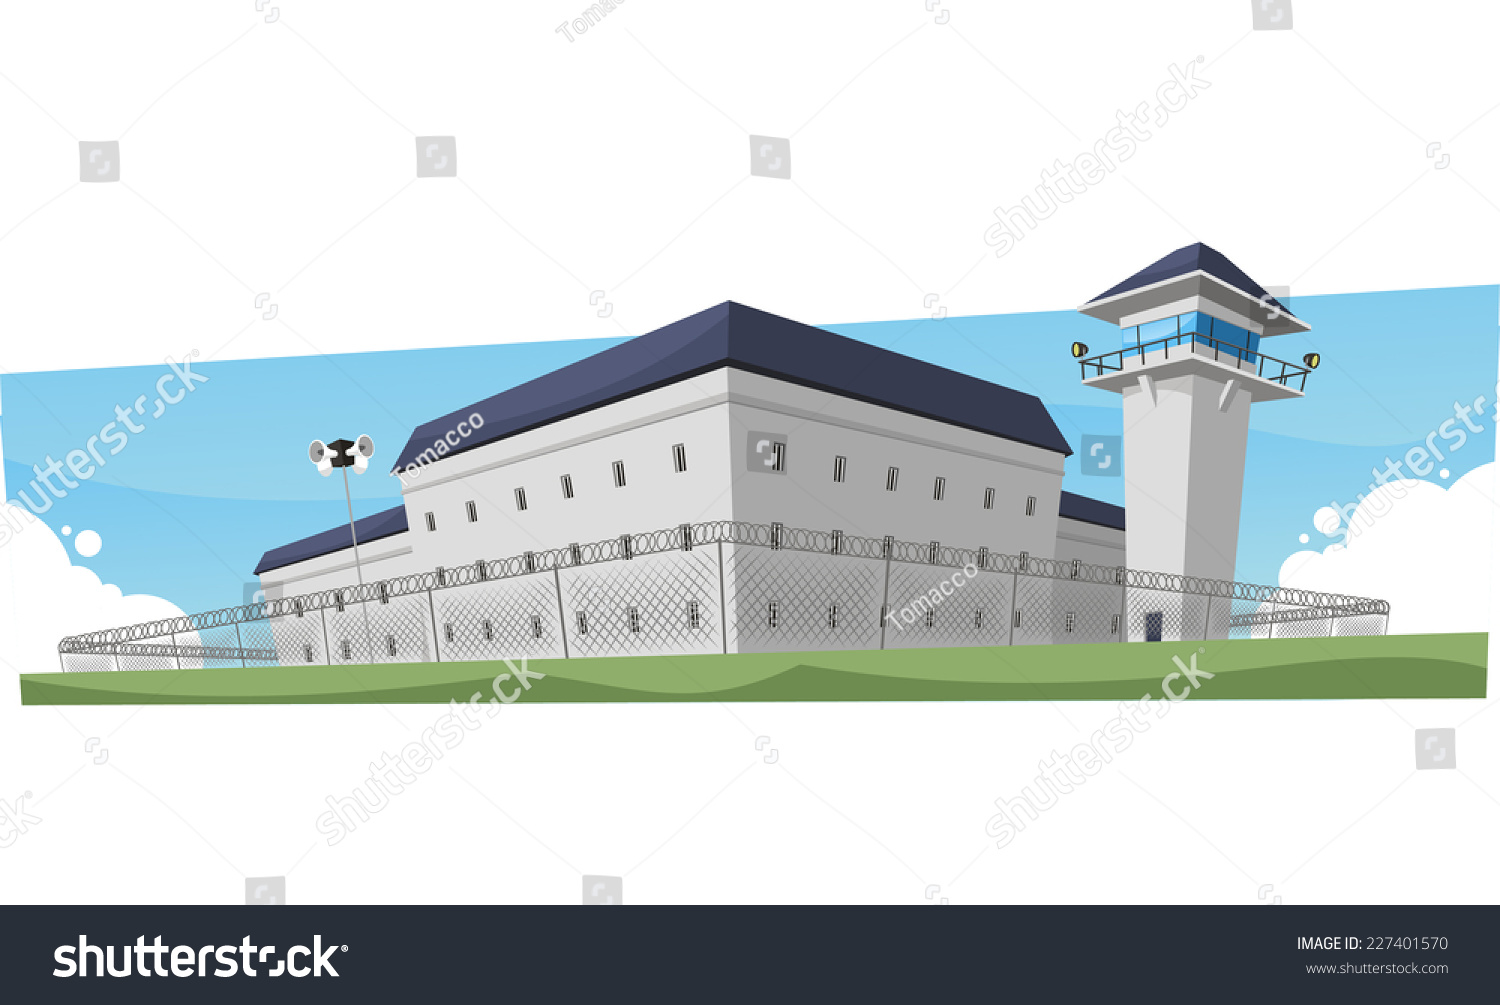 how to draw a jail building